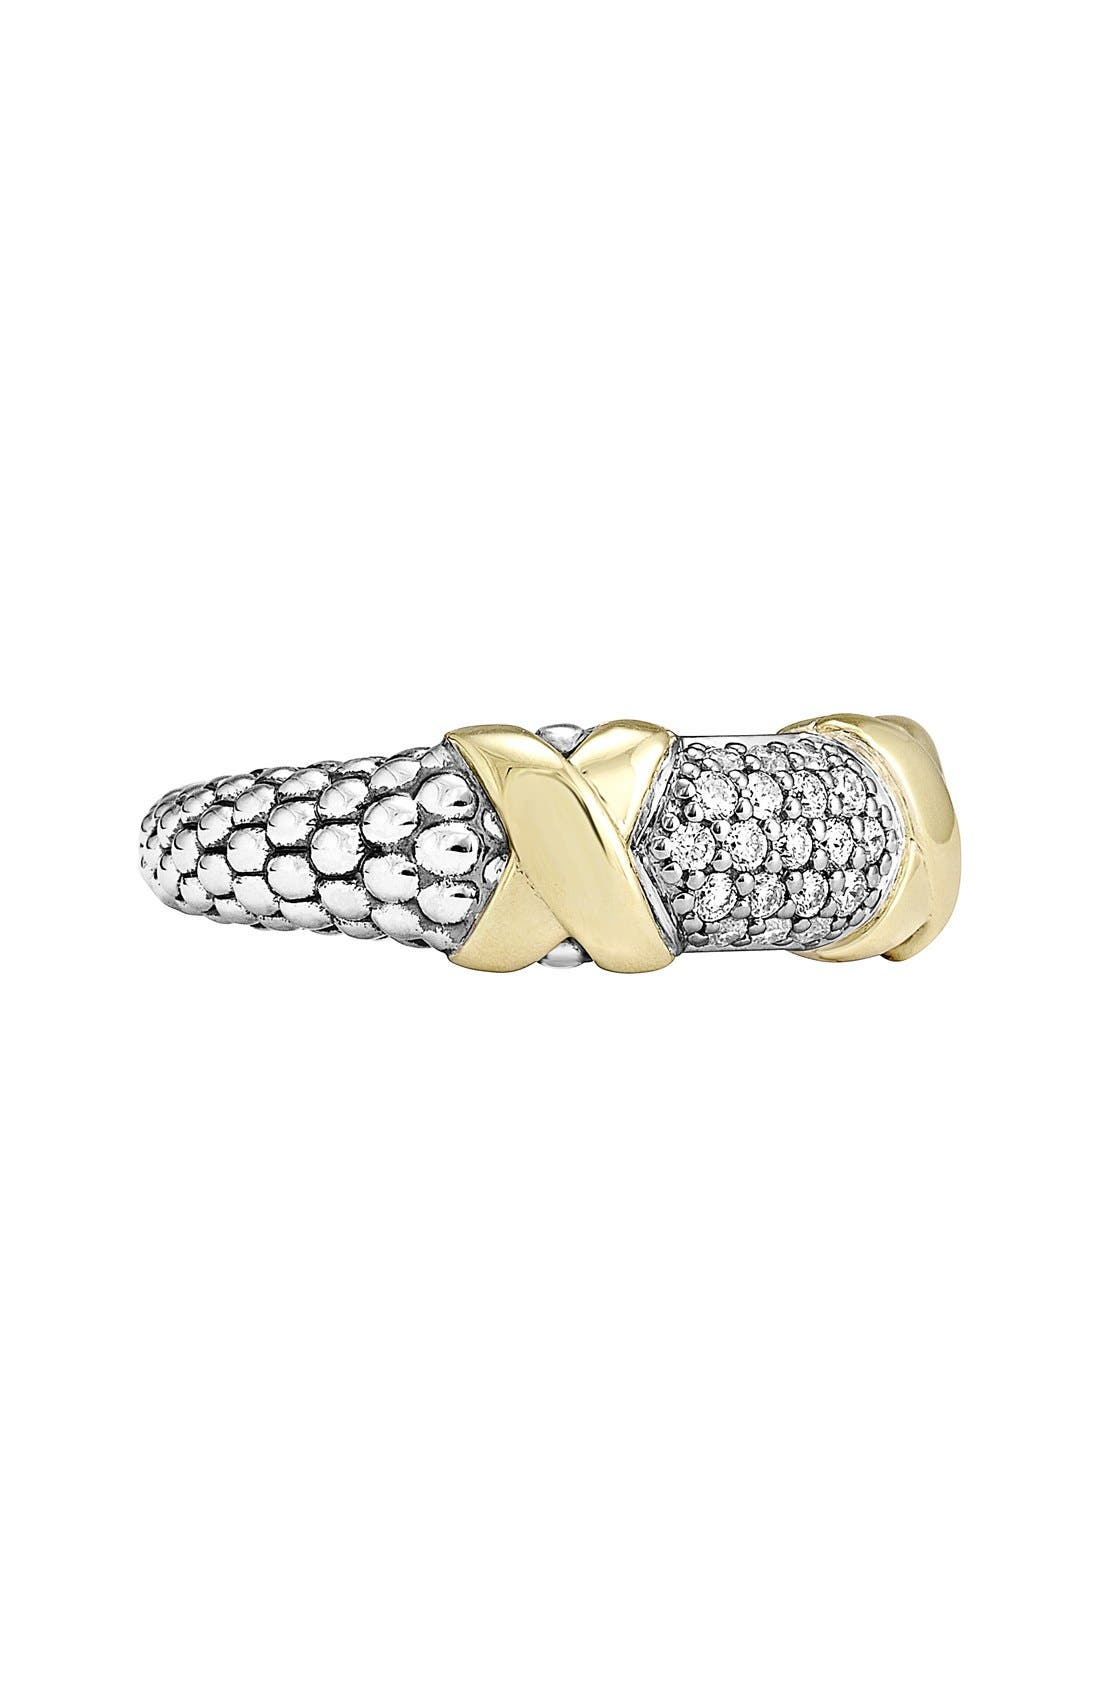 'Diamond Luxe' Ring,                             Alternate thumbnail 5, color,                             040